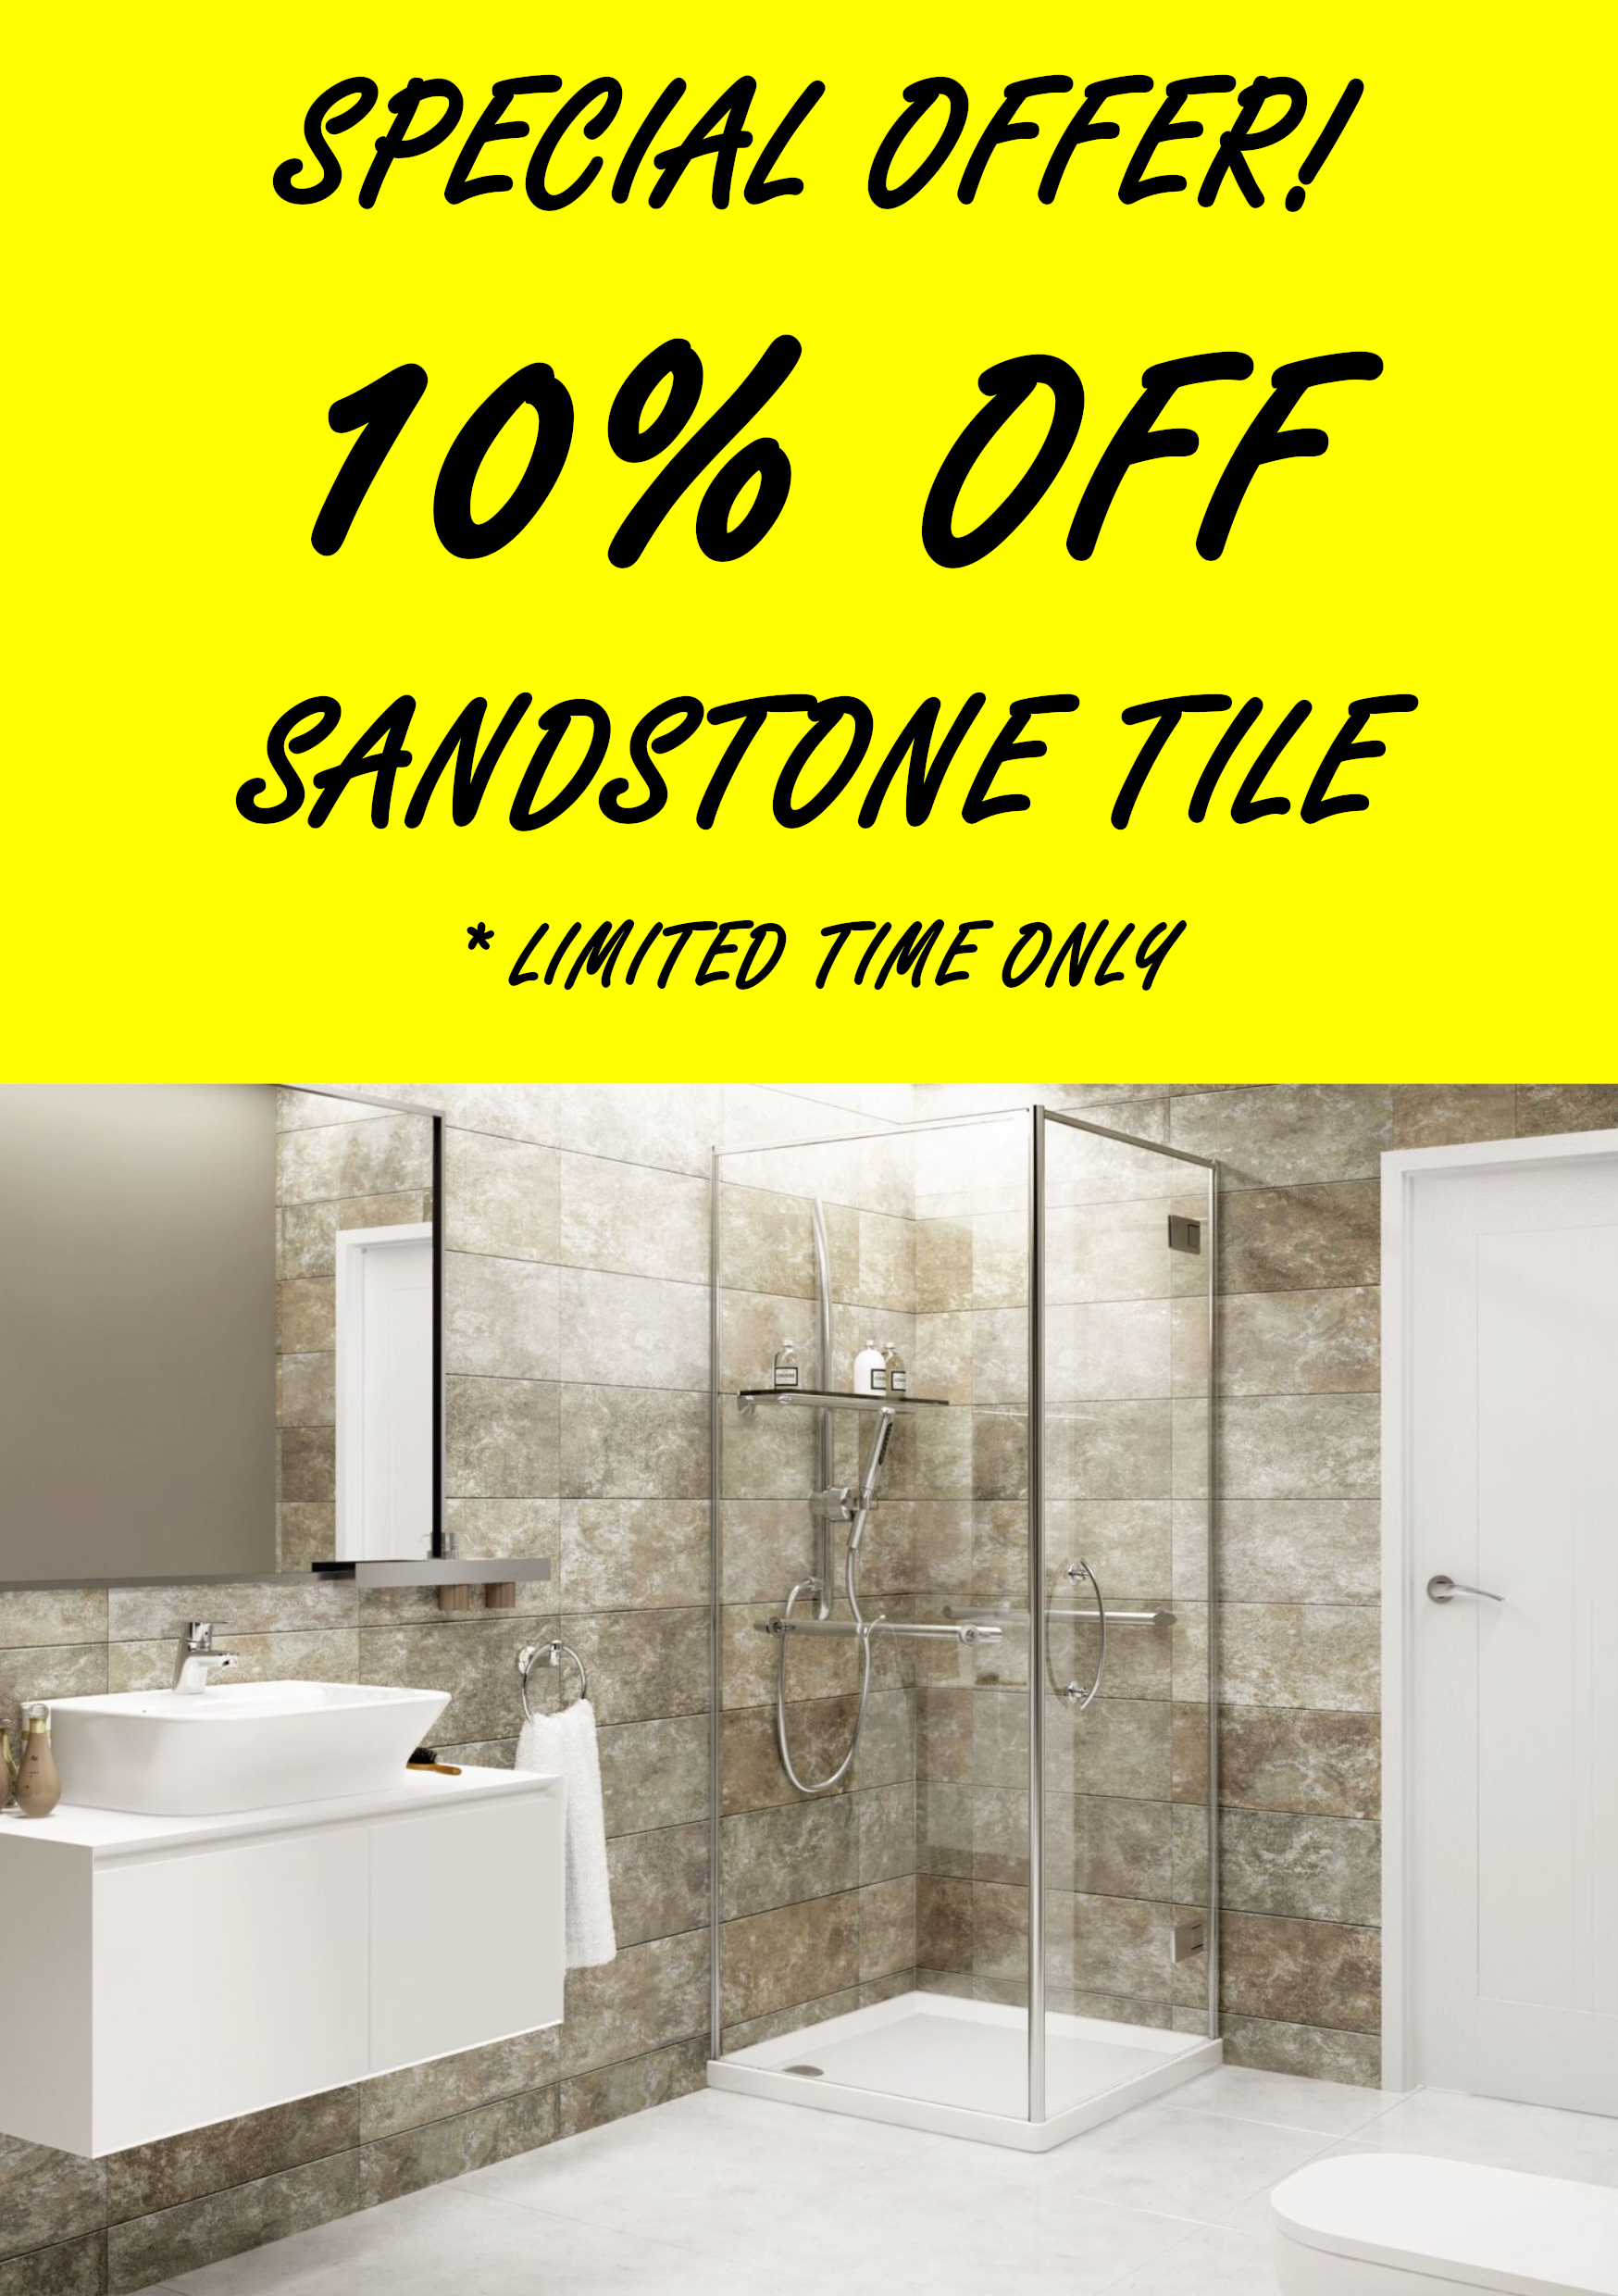 Sandstone Tile 10% OFF